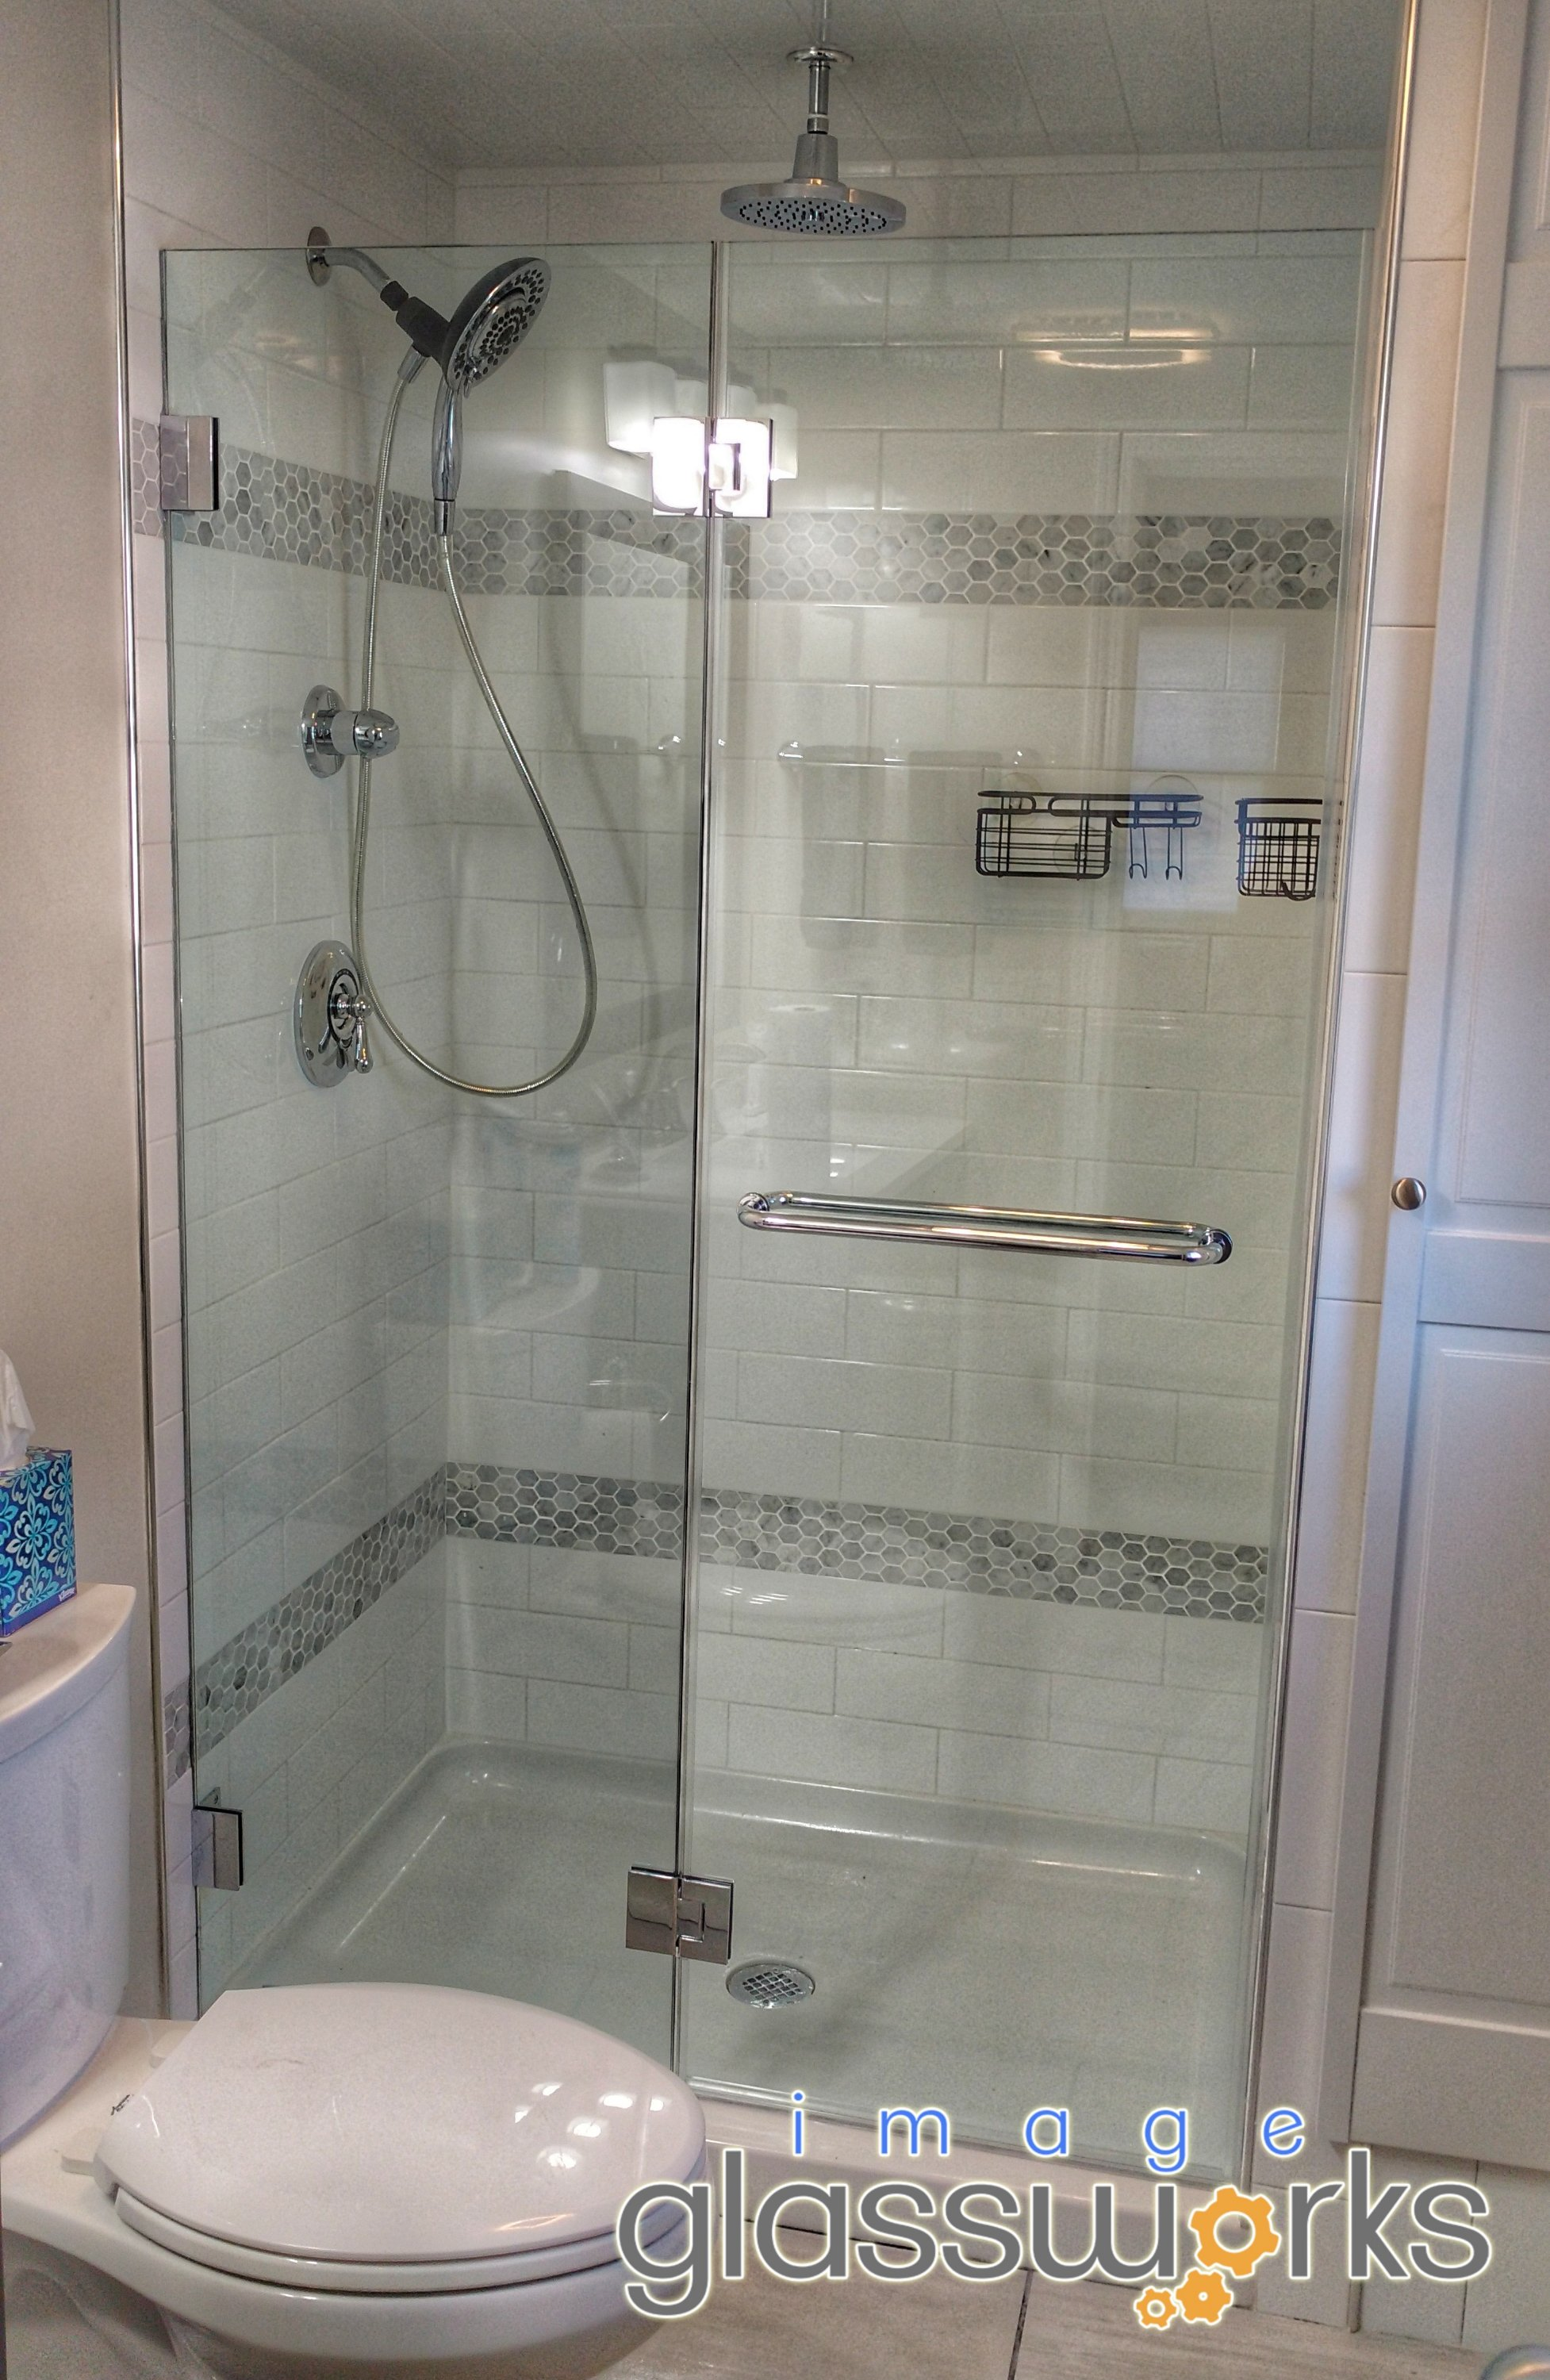 Frameless Door Hinged From Support Panel With Towel Bar